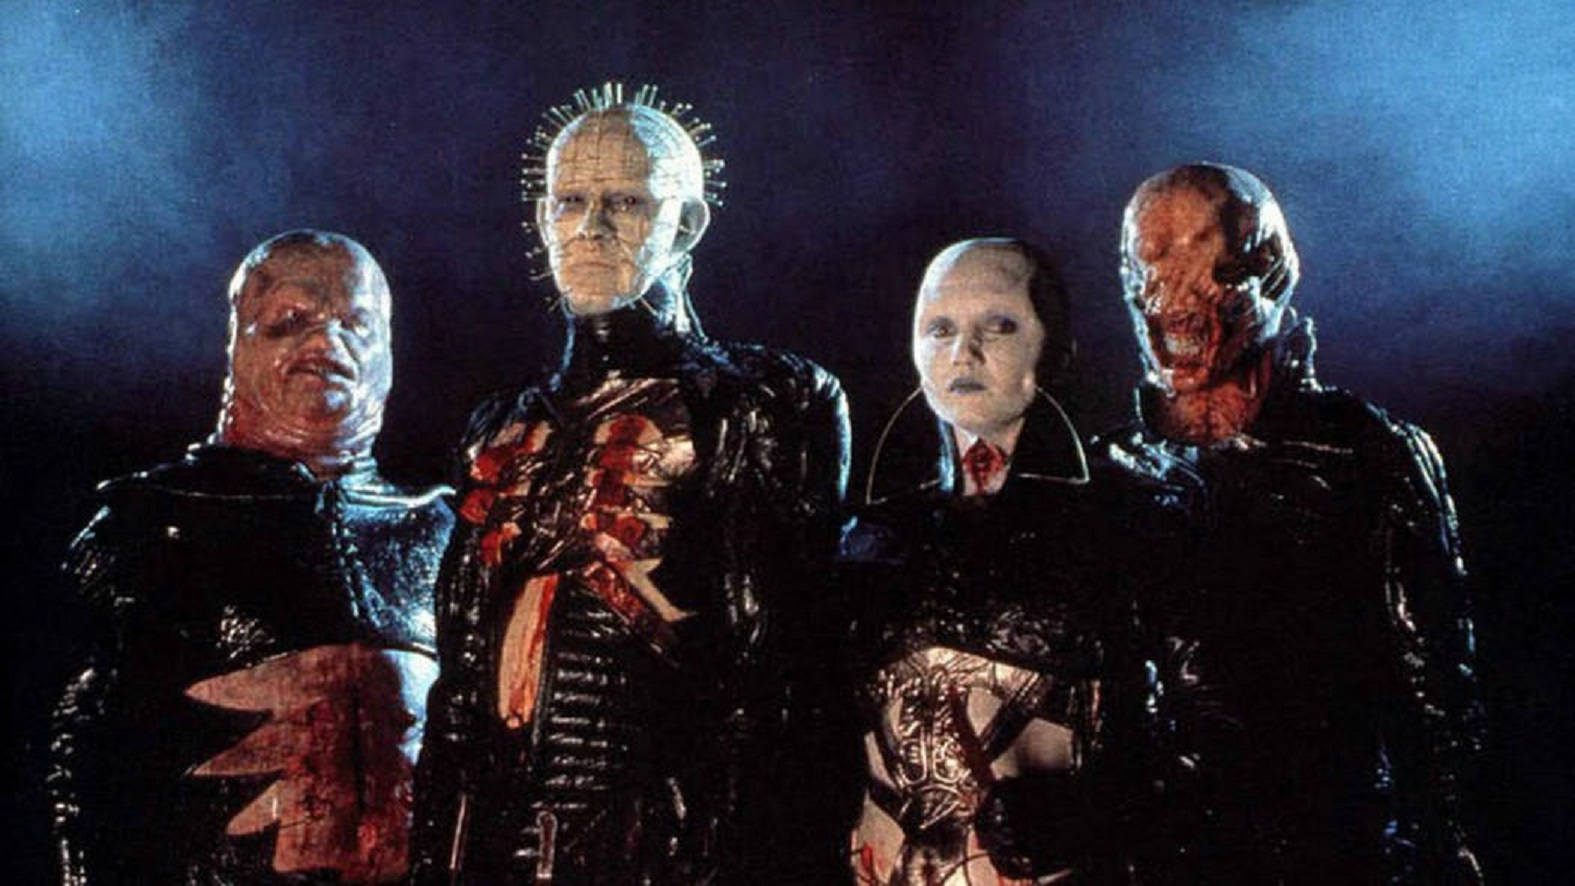 The Cenobites  - Butterball (Simon Bamford), Pinhead (Doug Bradley), the female Cenobite (Grace Kirby) and Chatterer (Nicholas Vince) - in Hellraiser (1987)